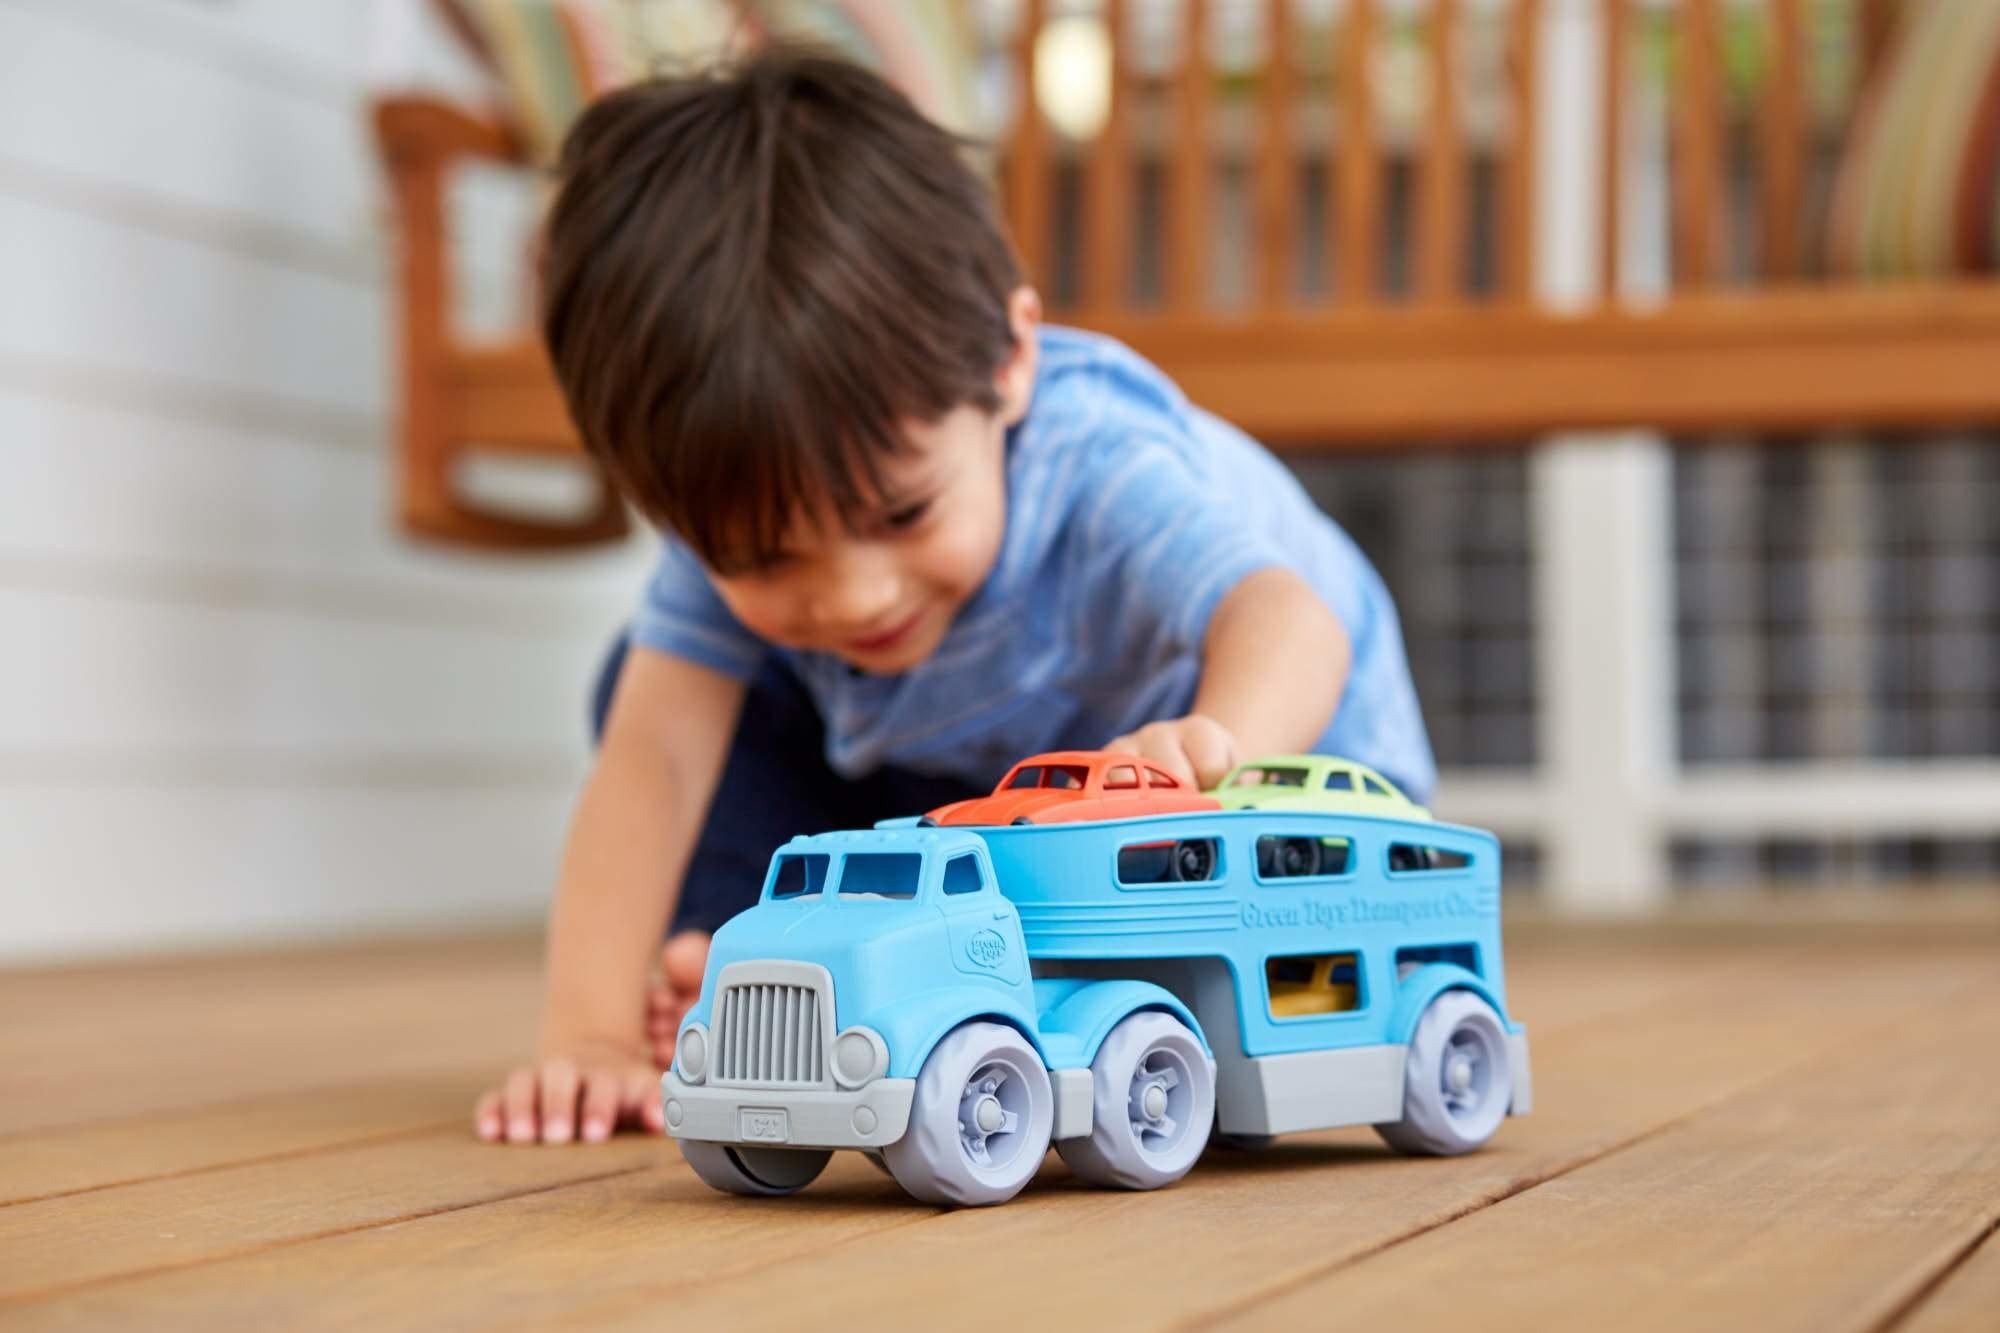 Green Toys Car Transporter made from recycled plastic